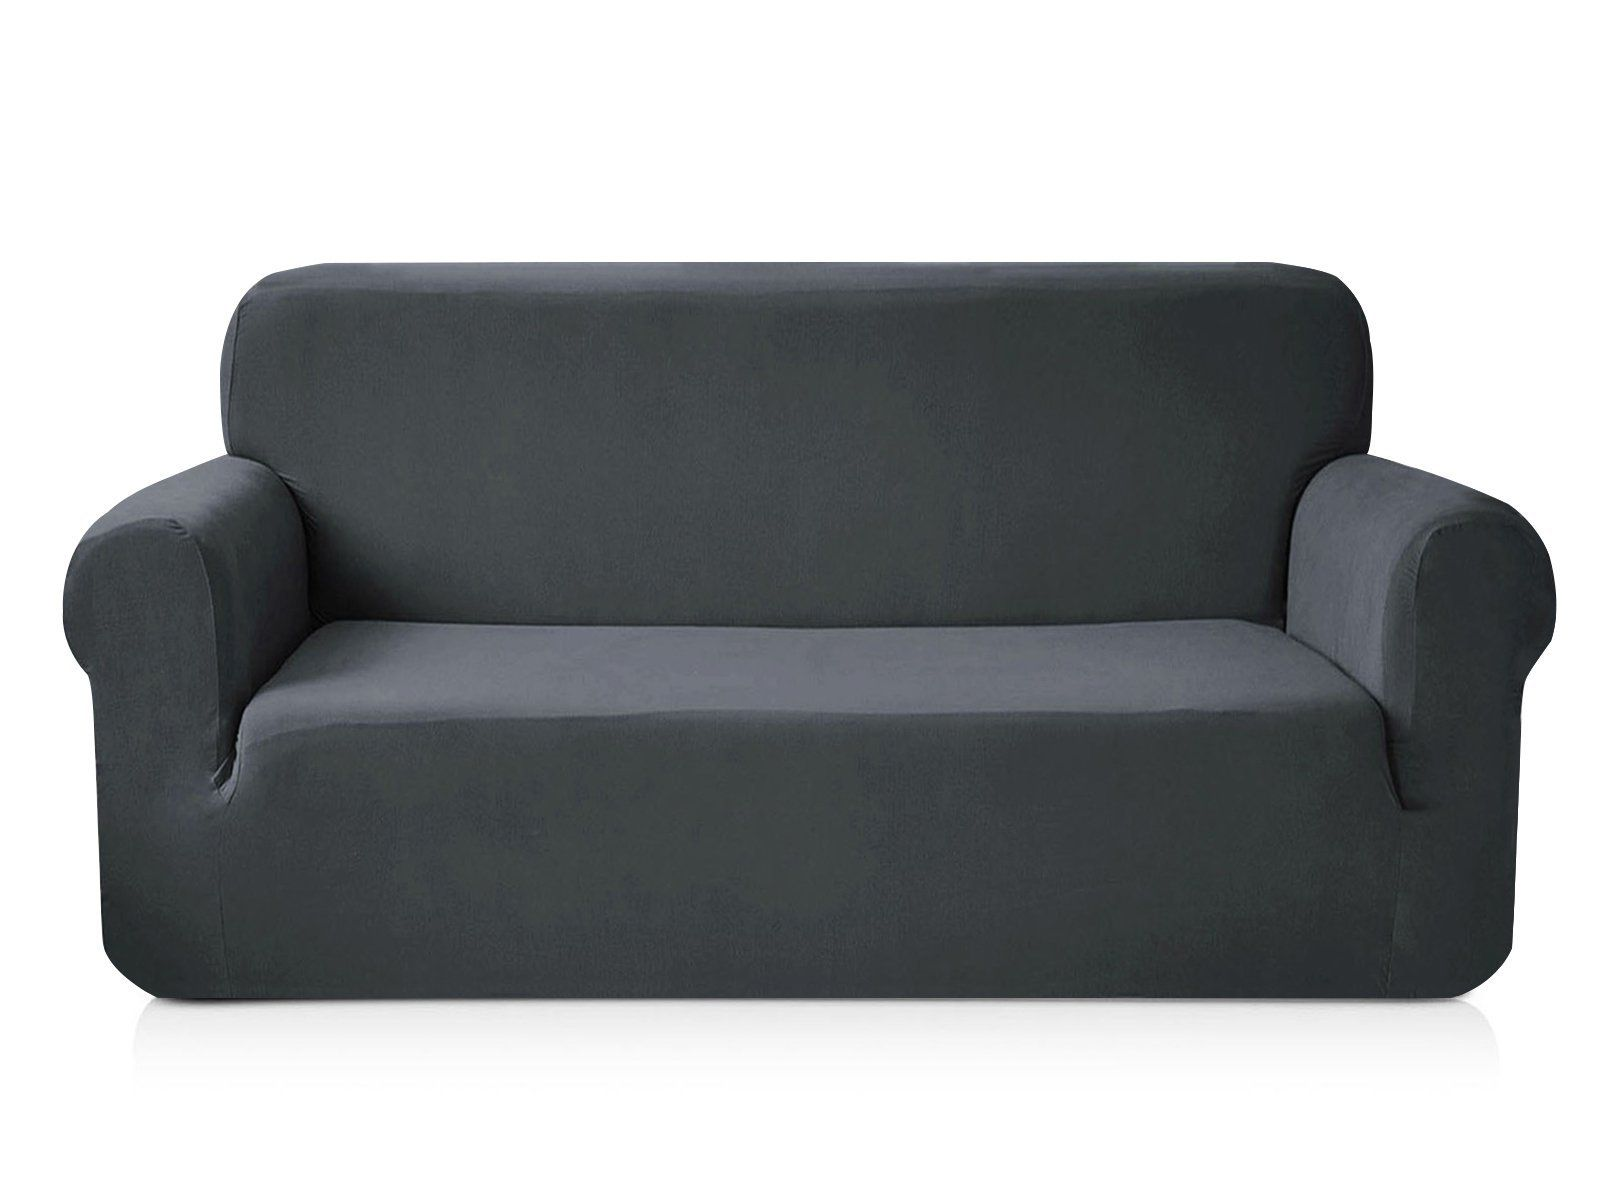 Chun Yi 1piece Knit Spandex Fbaric Sofa Slipcovers Loveseat Grey Check Out The Image By Visiting The Link I Slipcovered Sofa Fabric Sofa Loveseat Slipcovers